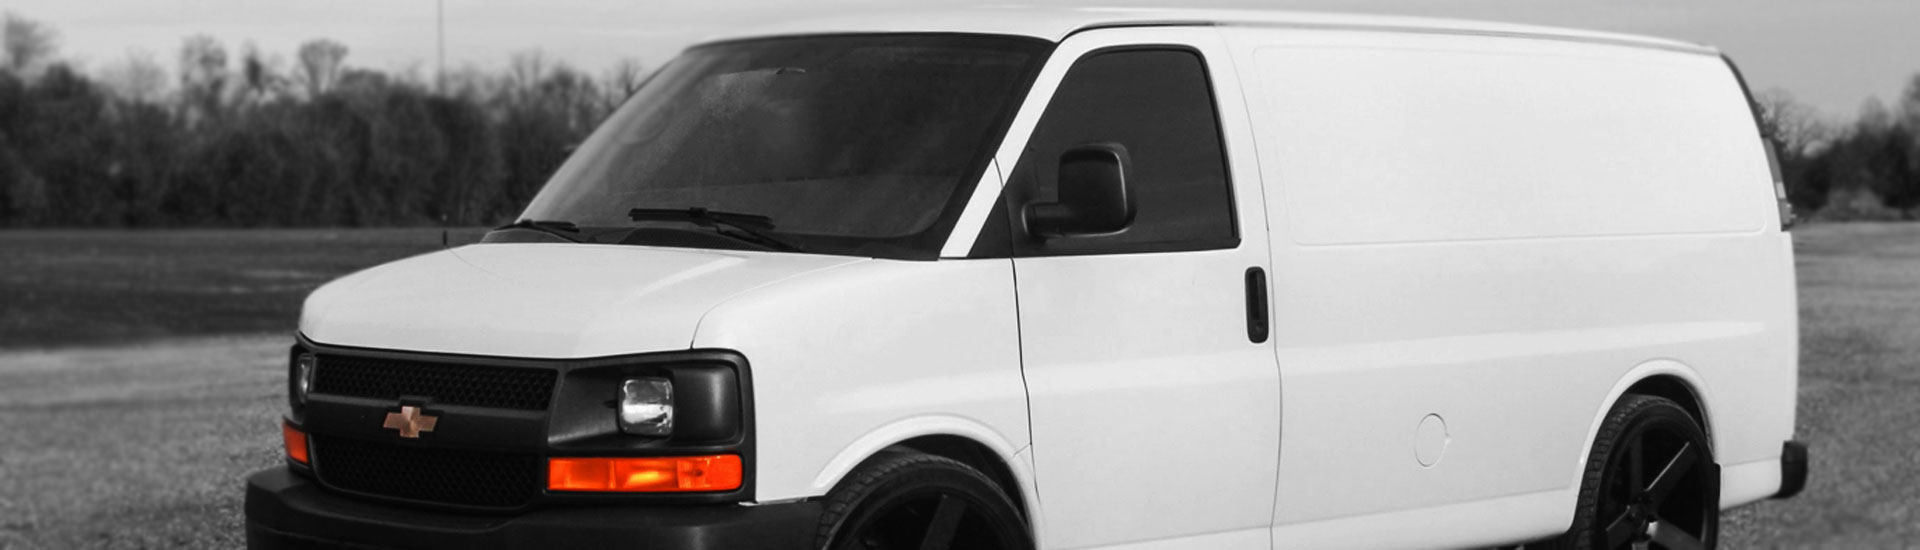 Chevrolet Express Window Tint